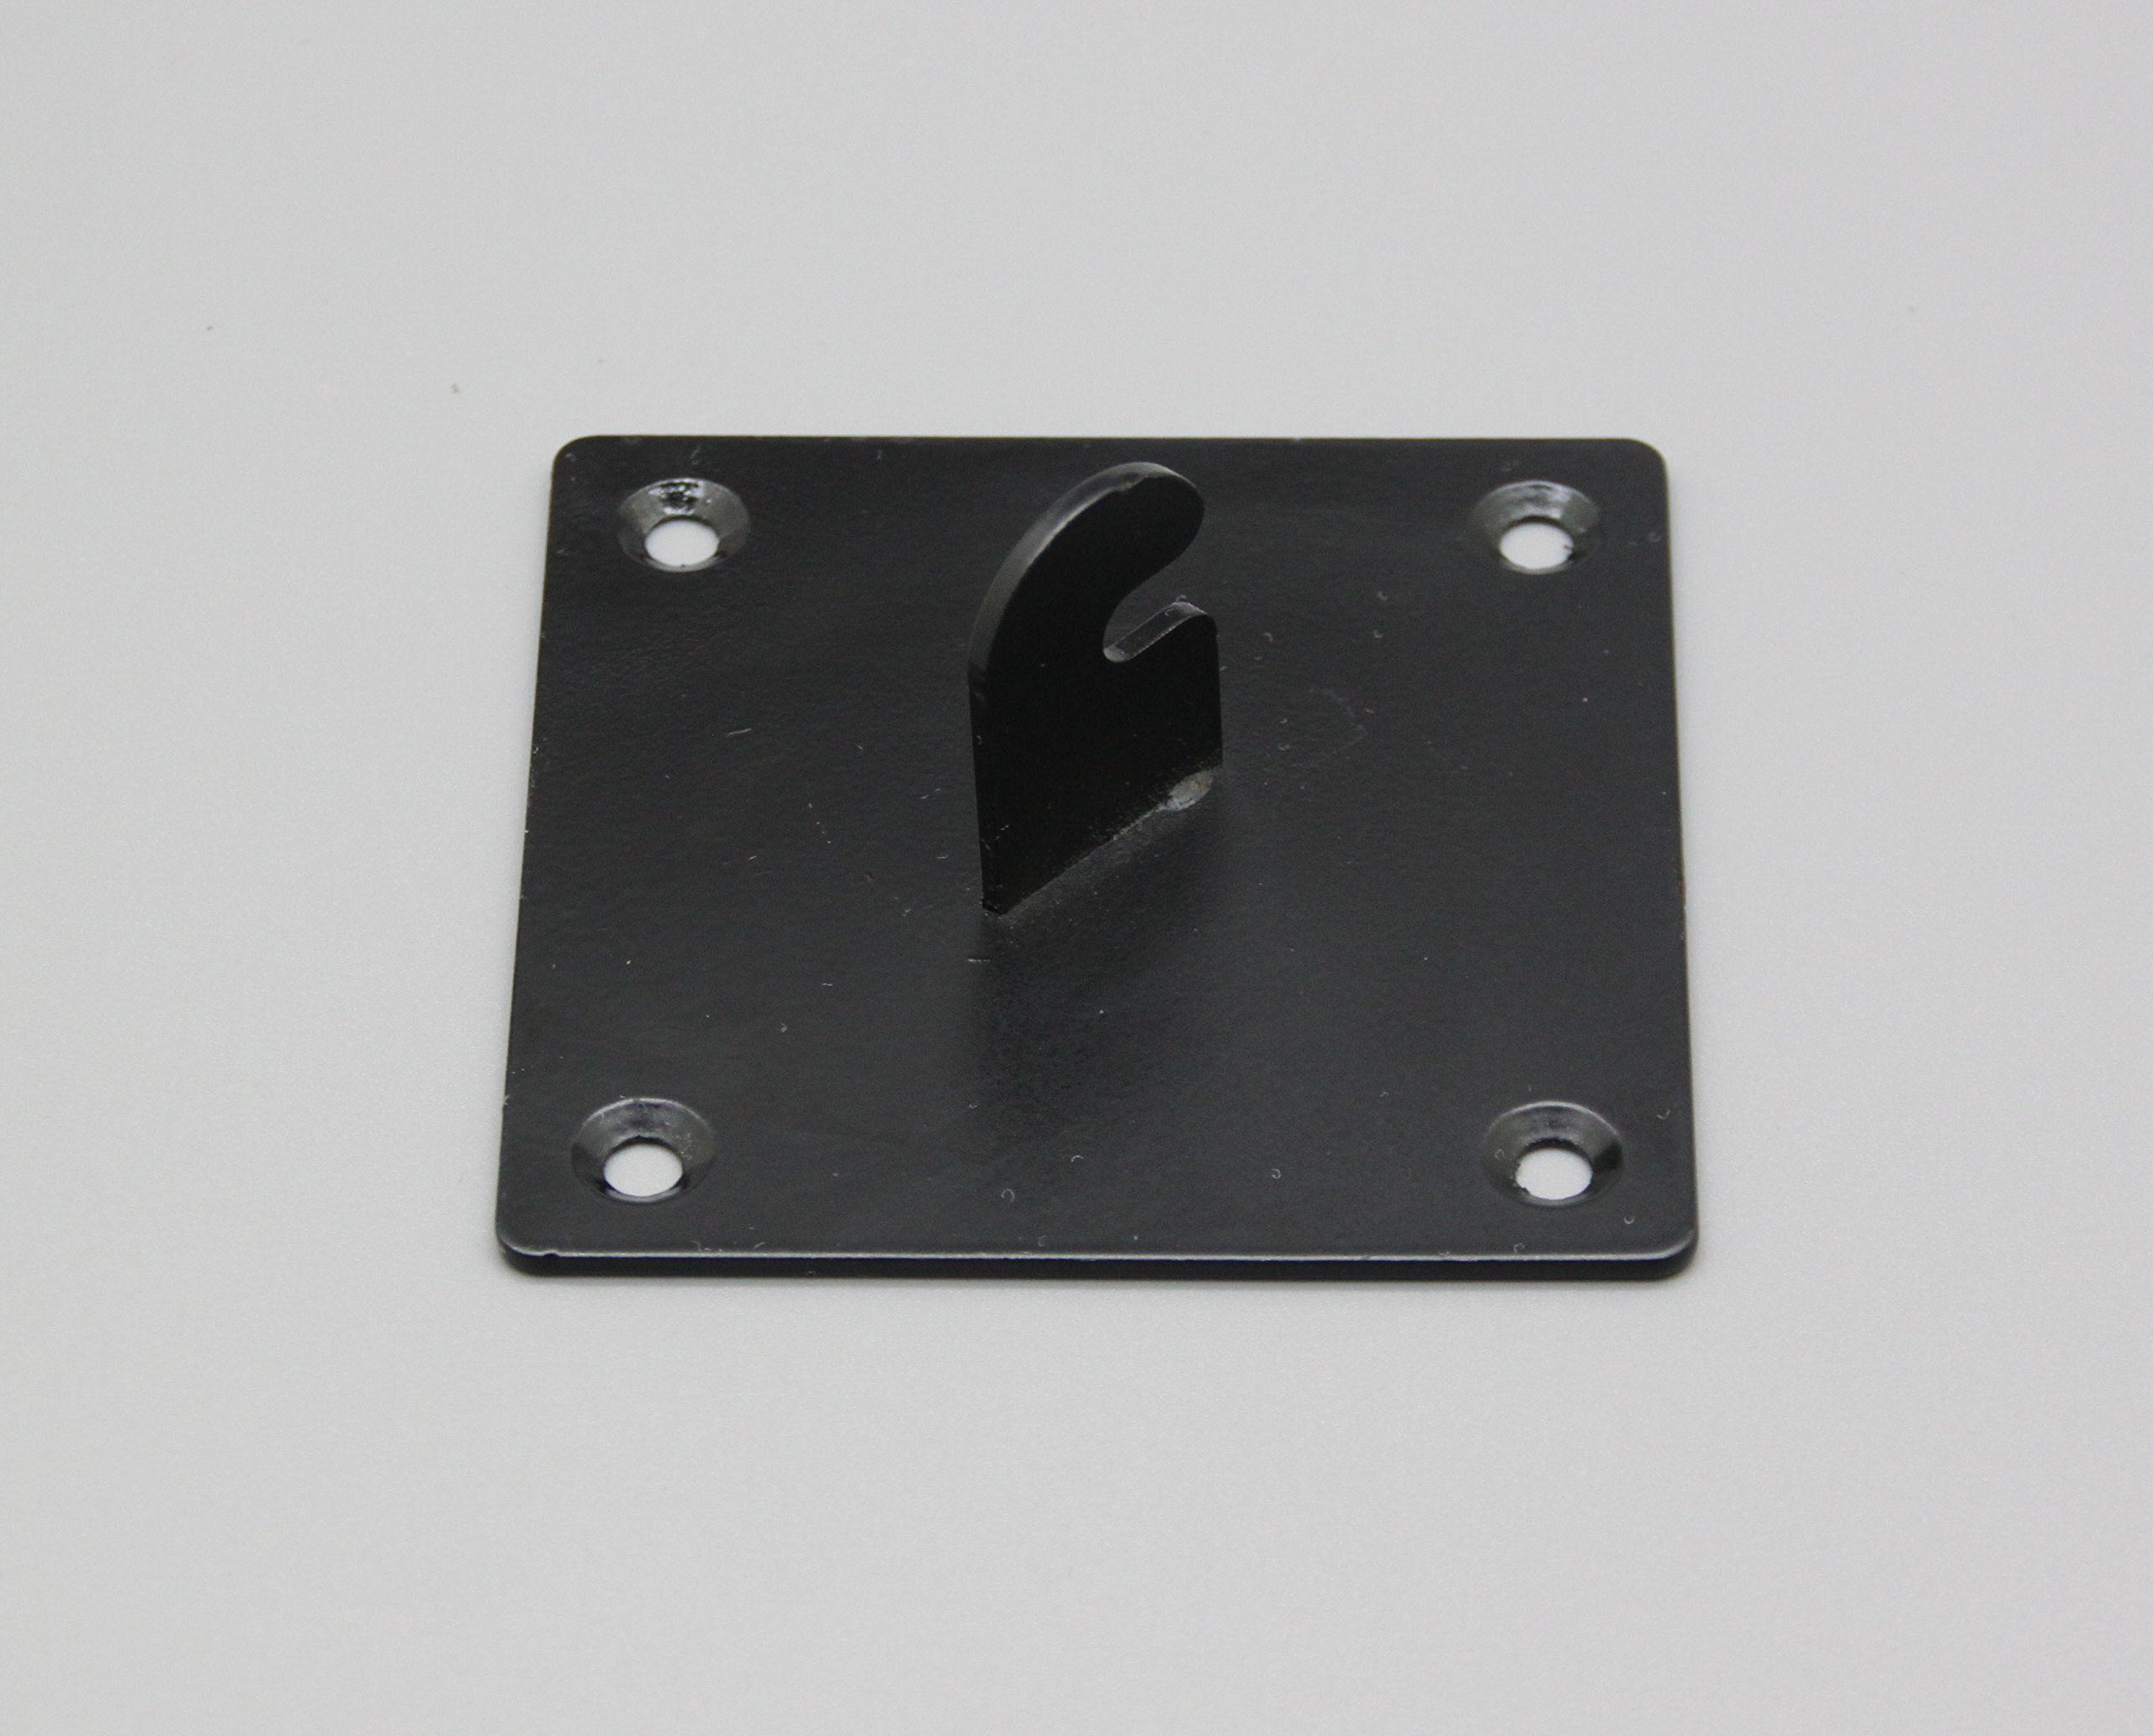 FixtureDisplays Mounting Bracket for Wire Grid Panel Wall Display Grid Wall 15810-NF